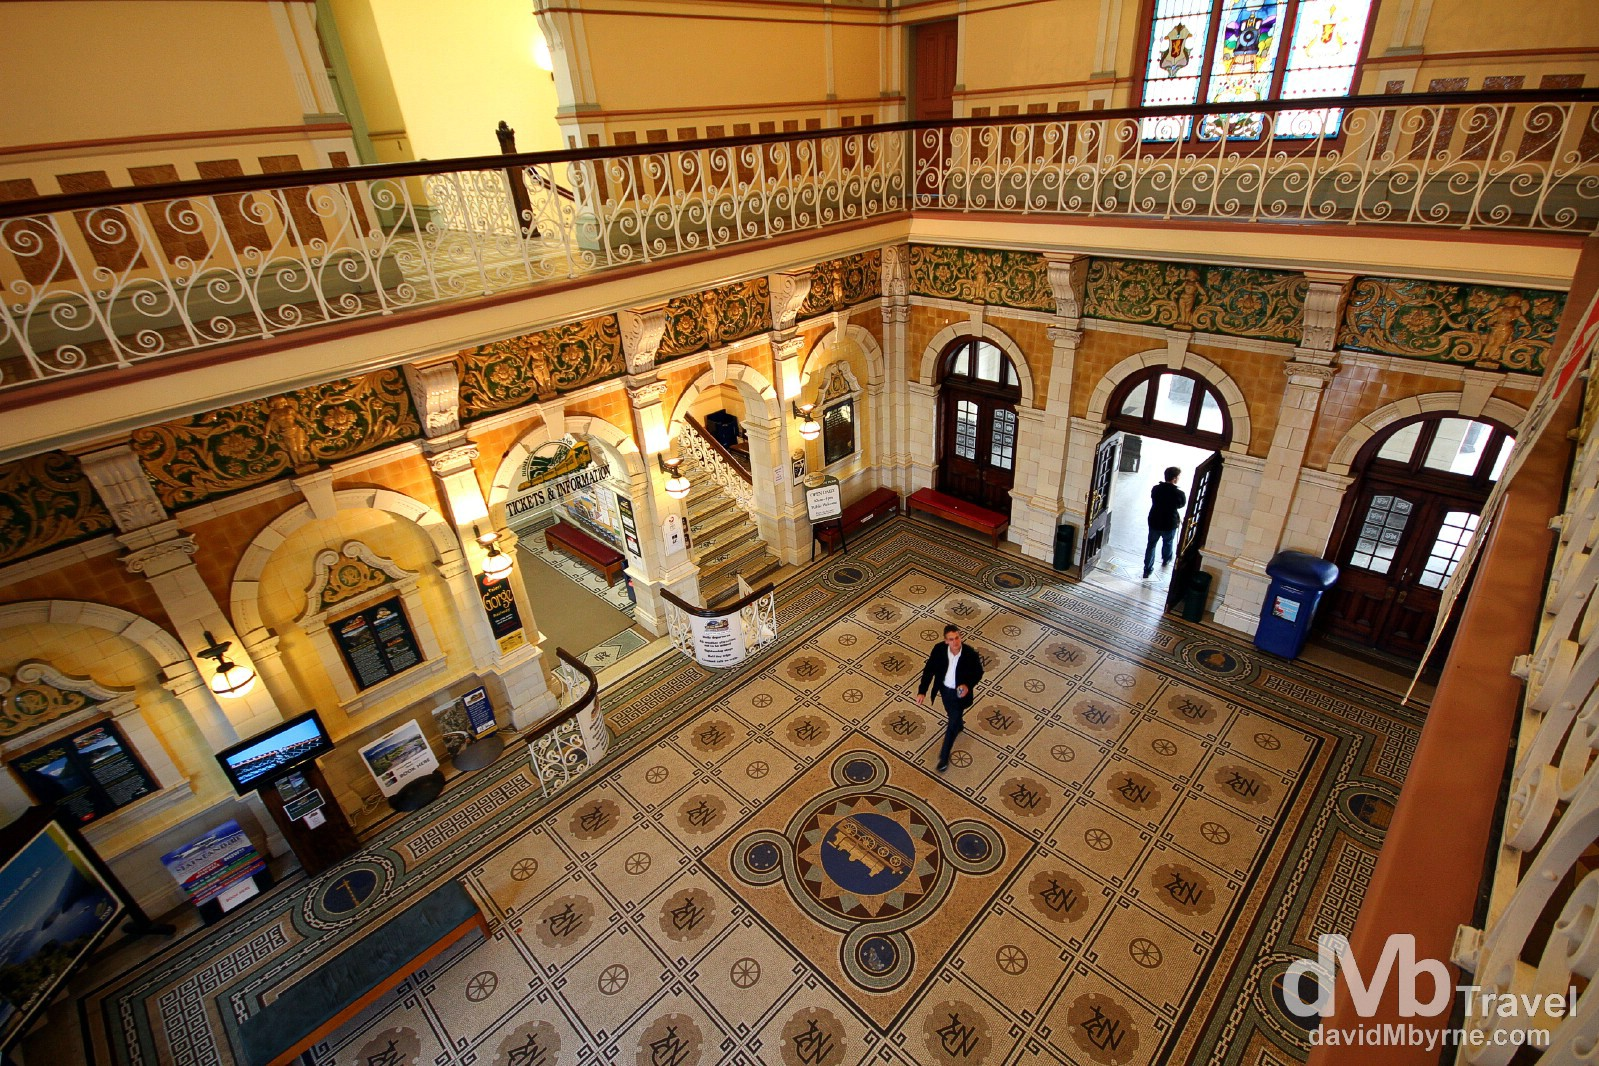 The foyer of the Edwardian railway station in Dunedin, South Island, New Zealand. May 29th 2012.